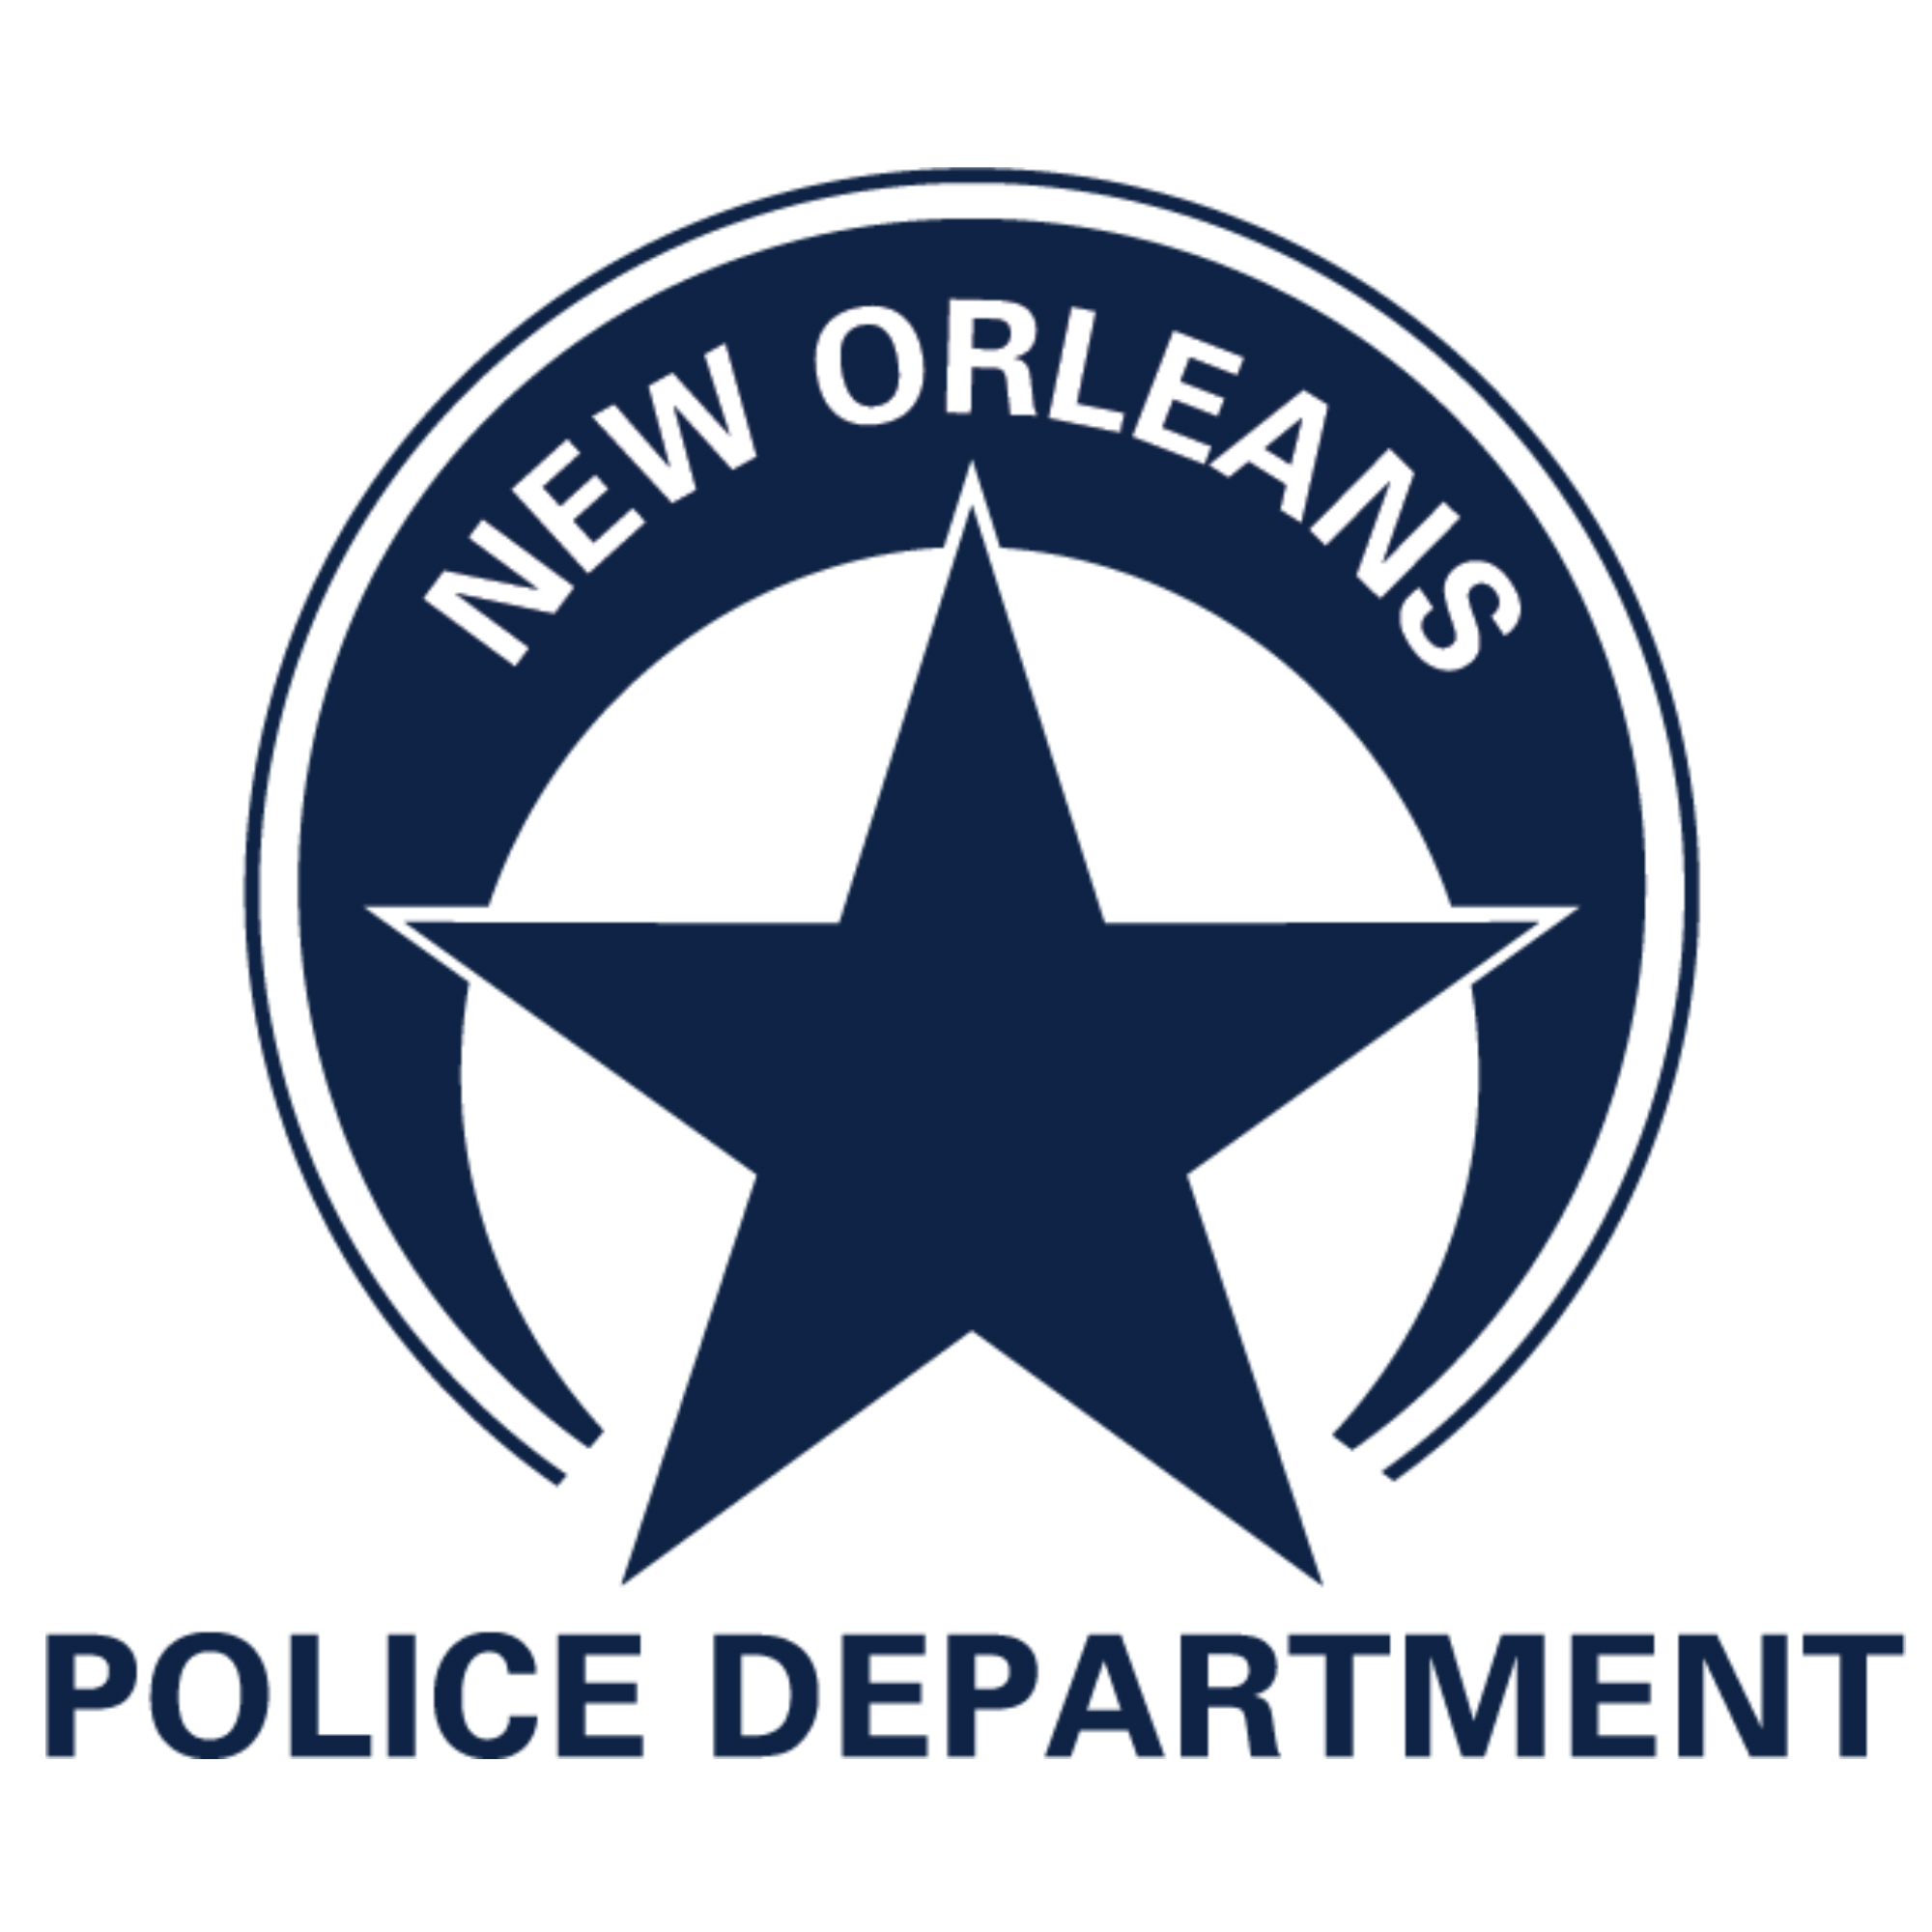 Nopd false alarms city of new orleans law enforcement personnel respond to thousands of false alarm calls yearly these unnecessary responses result in an enormous burden in manpower and expense buycottarizona Choice Image